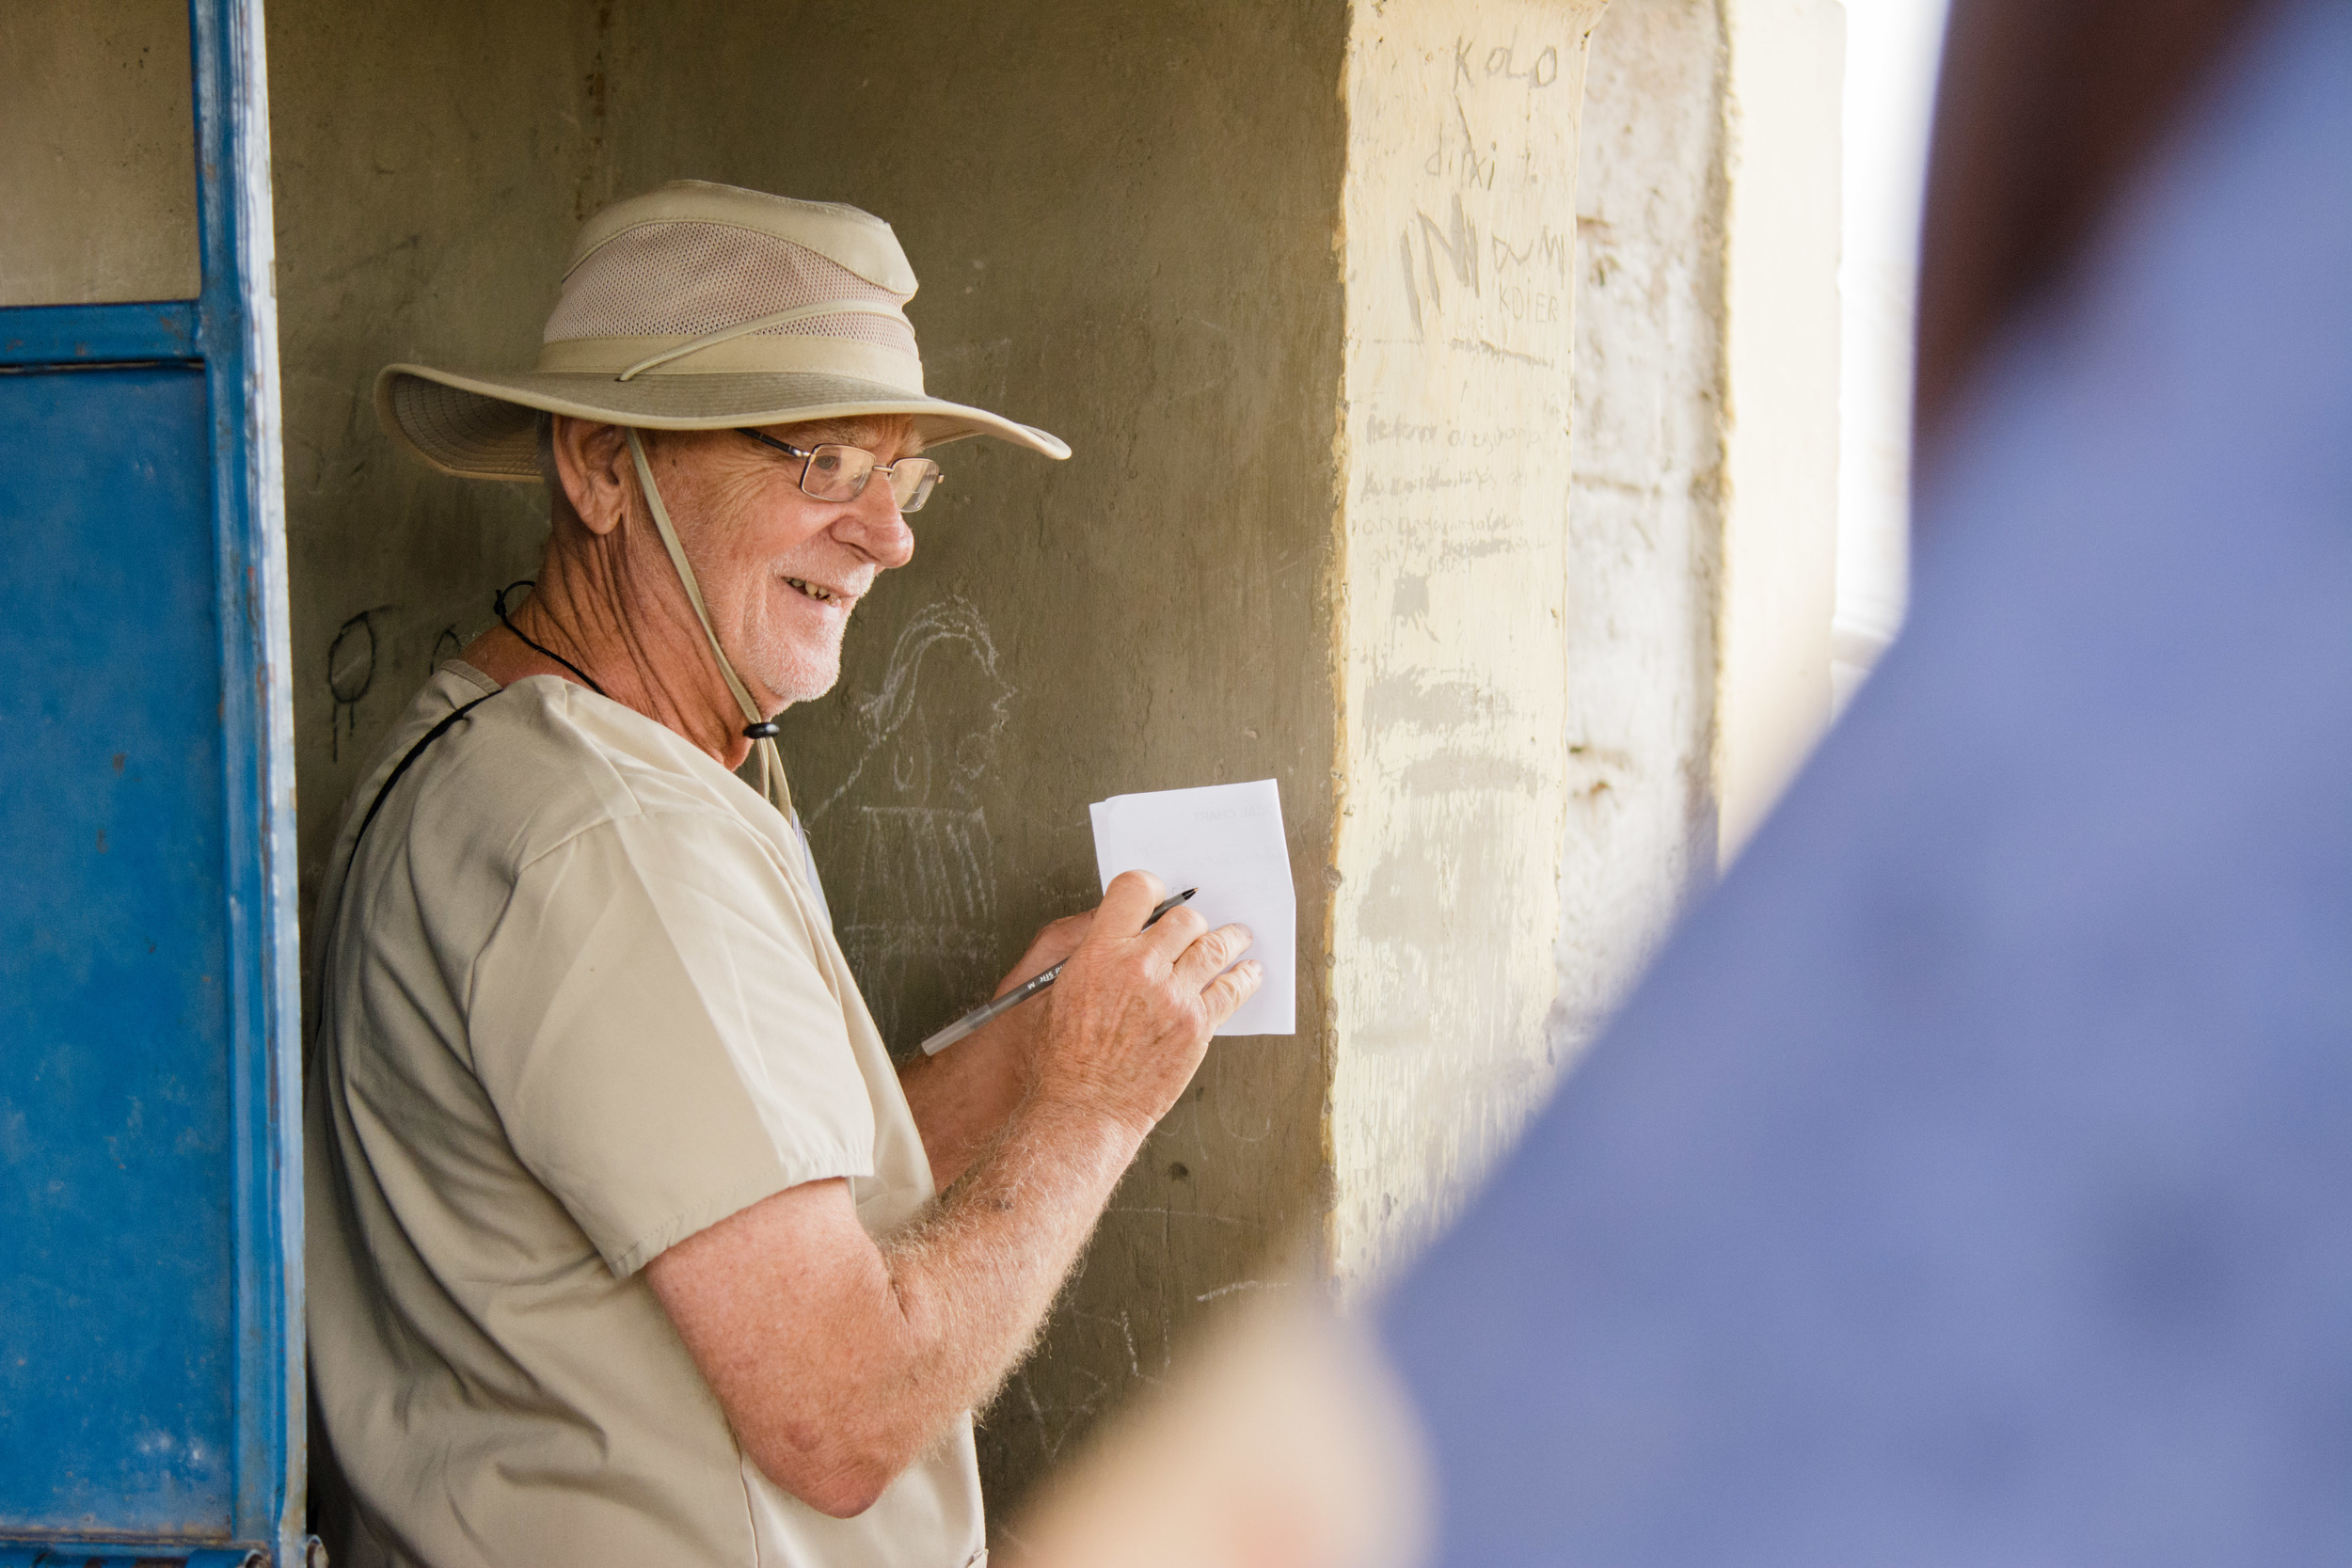 MMT volunteer Brian Lund records the weight of one of the patients.